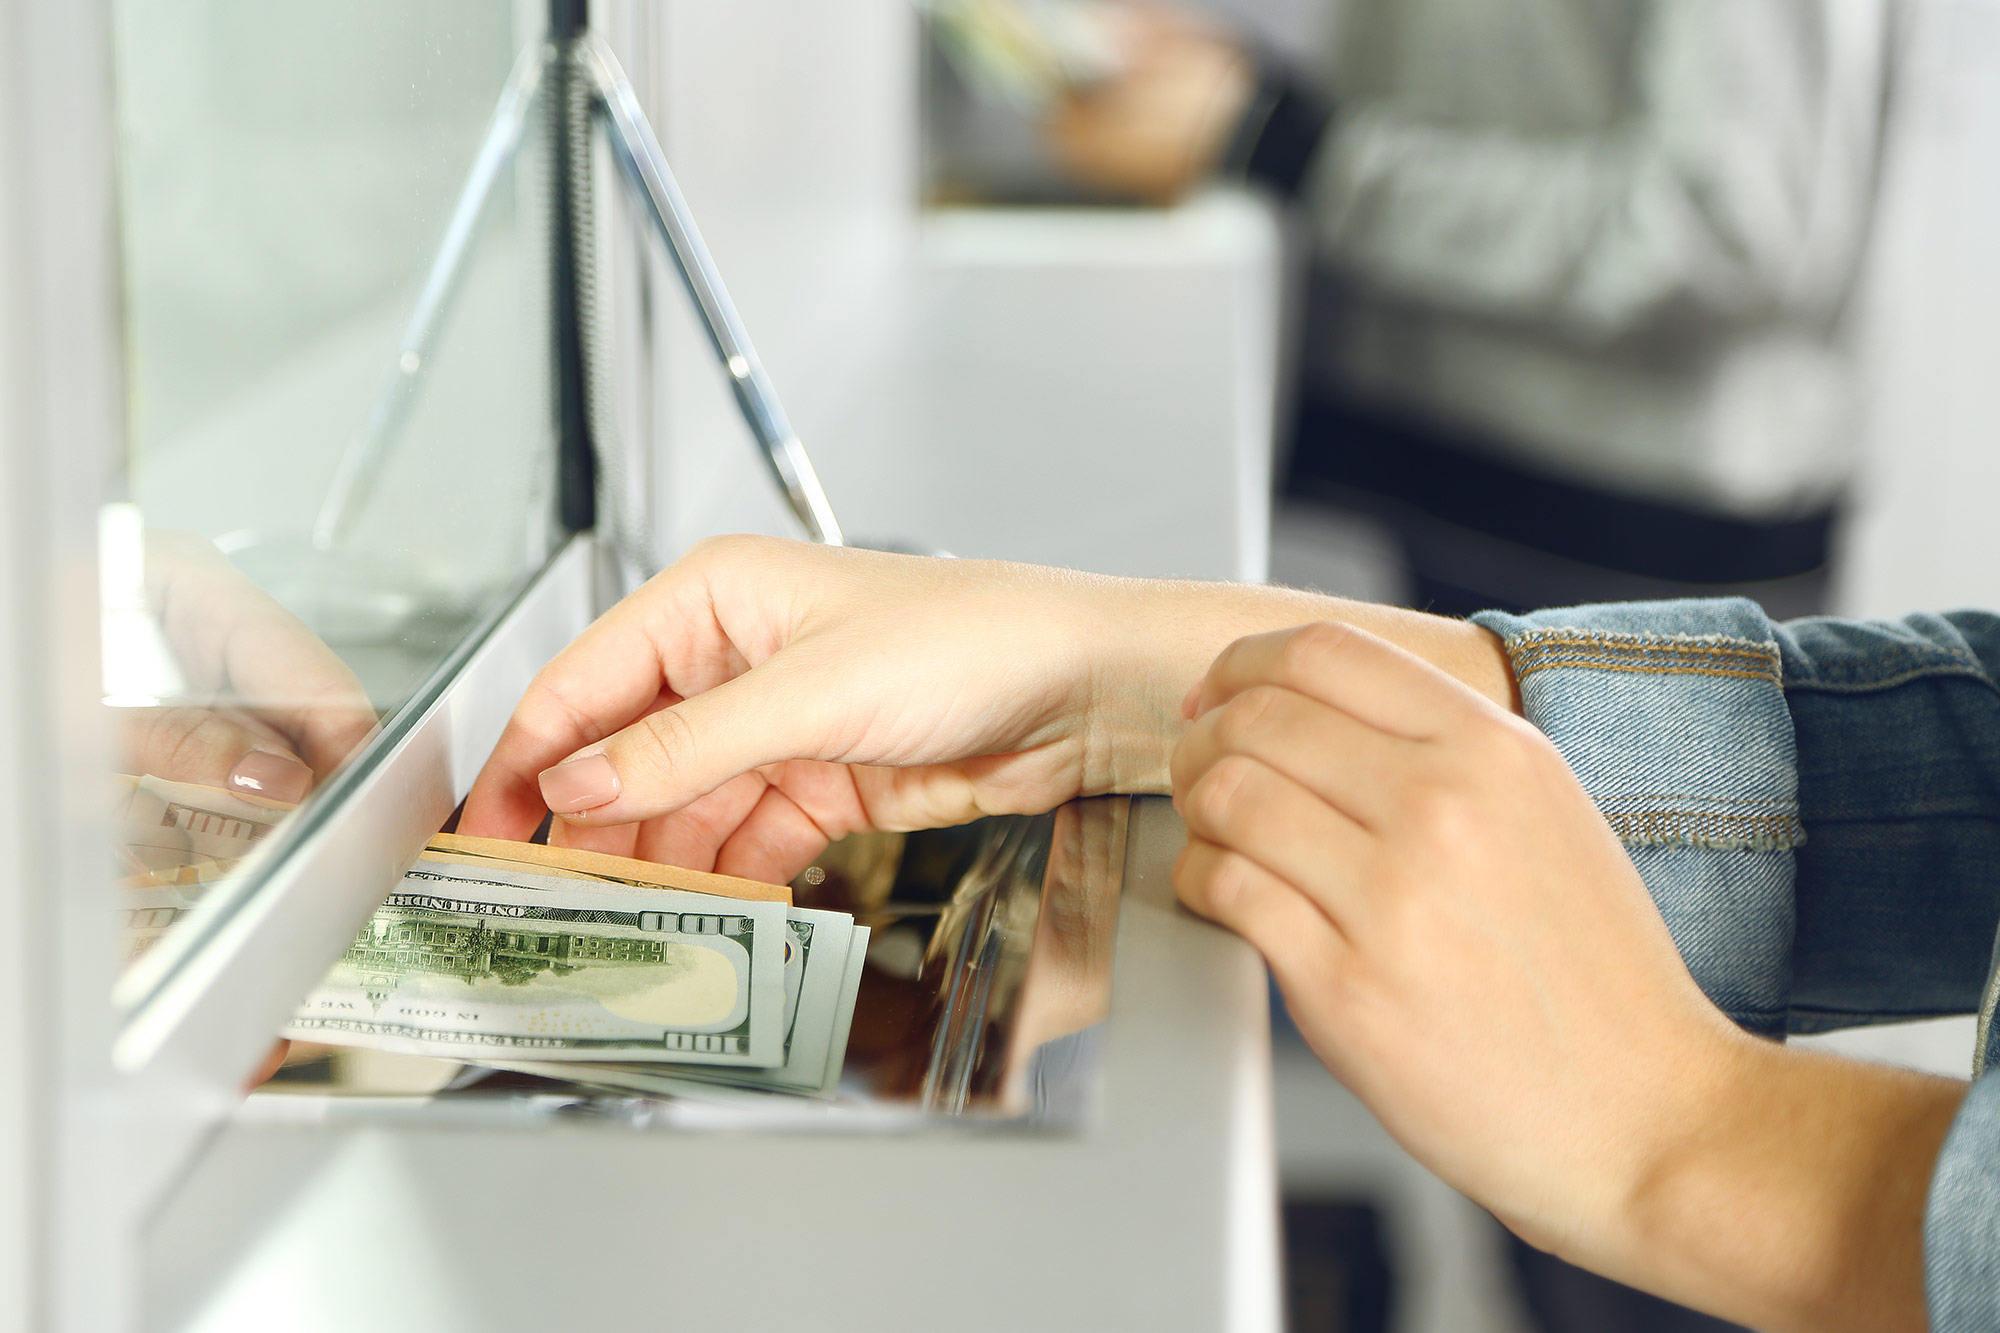 Check Cashing Business Los Angeles